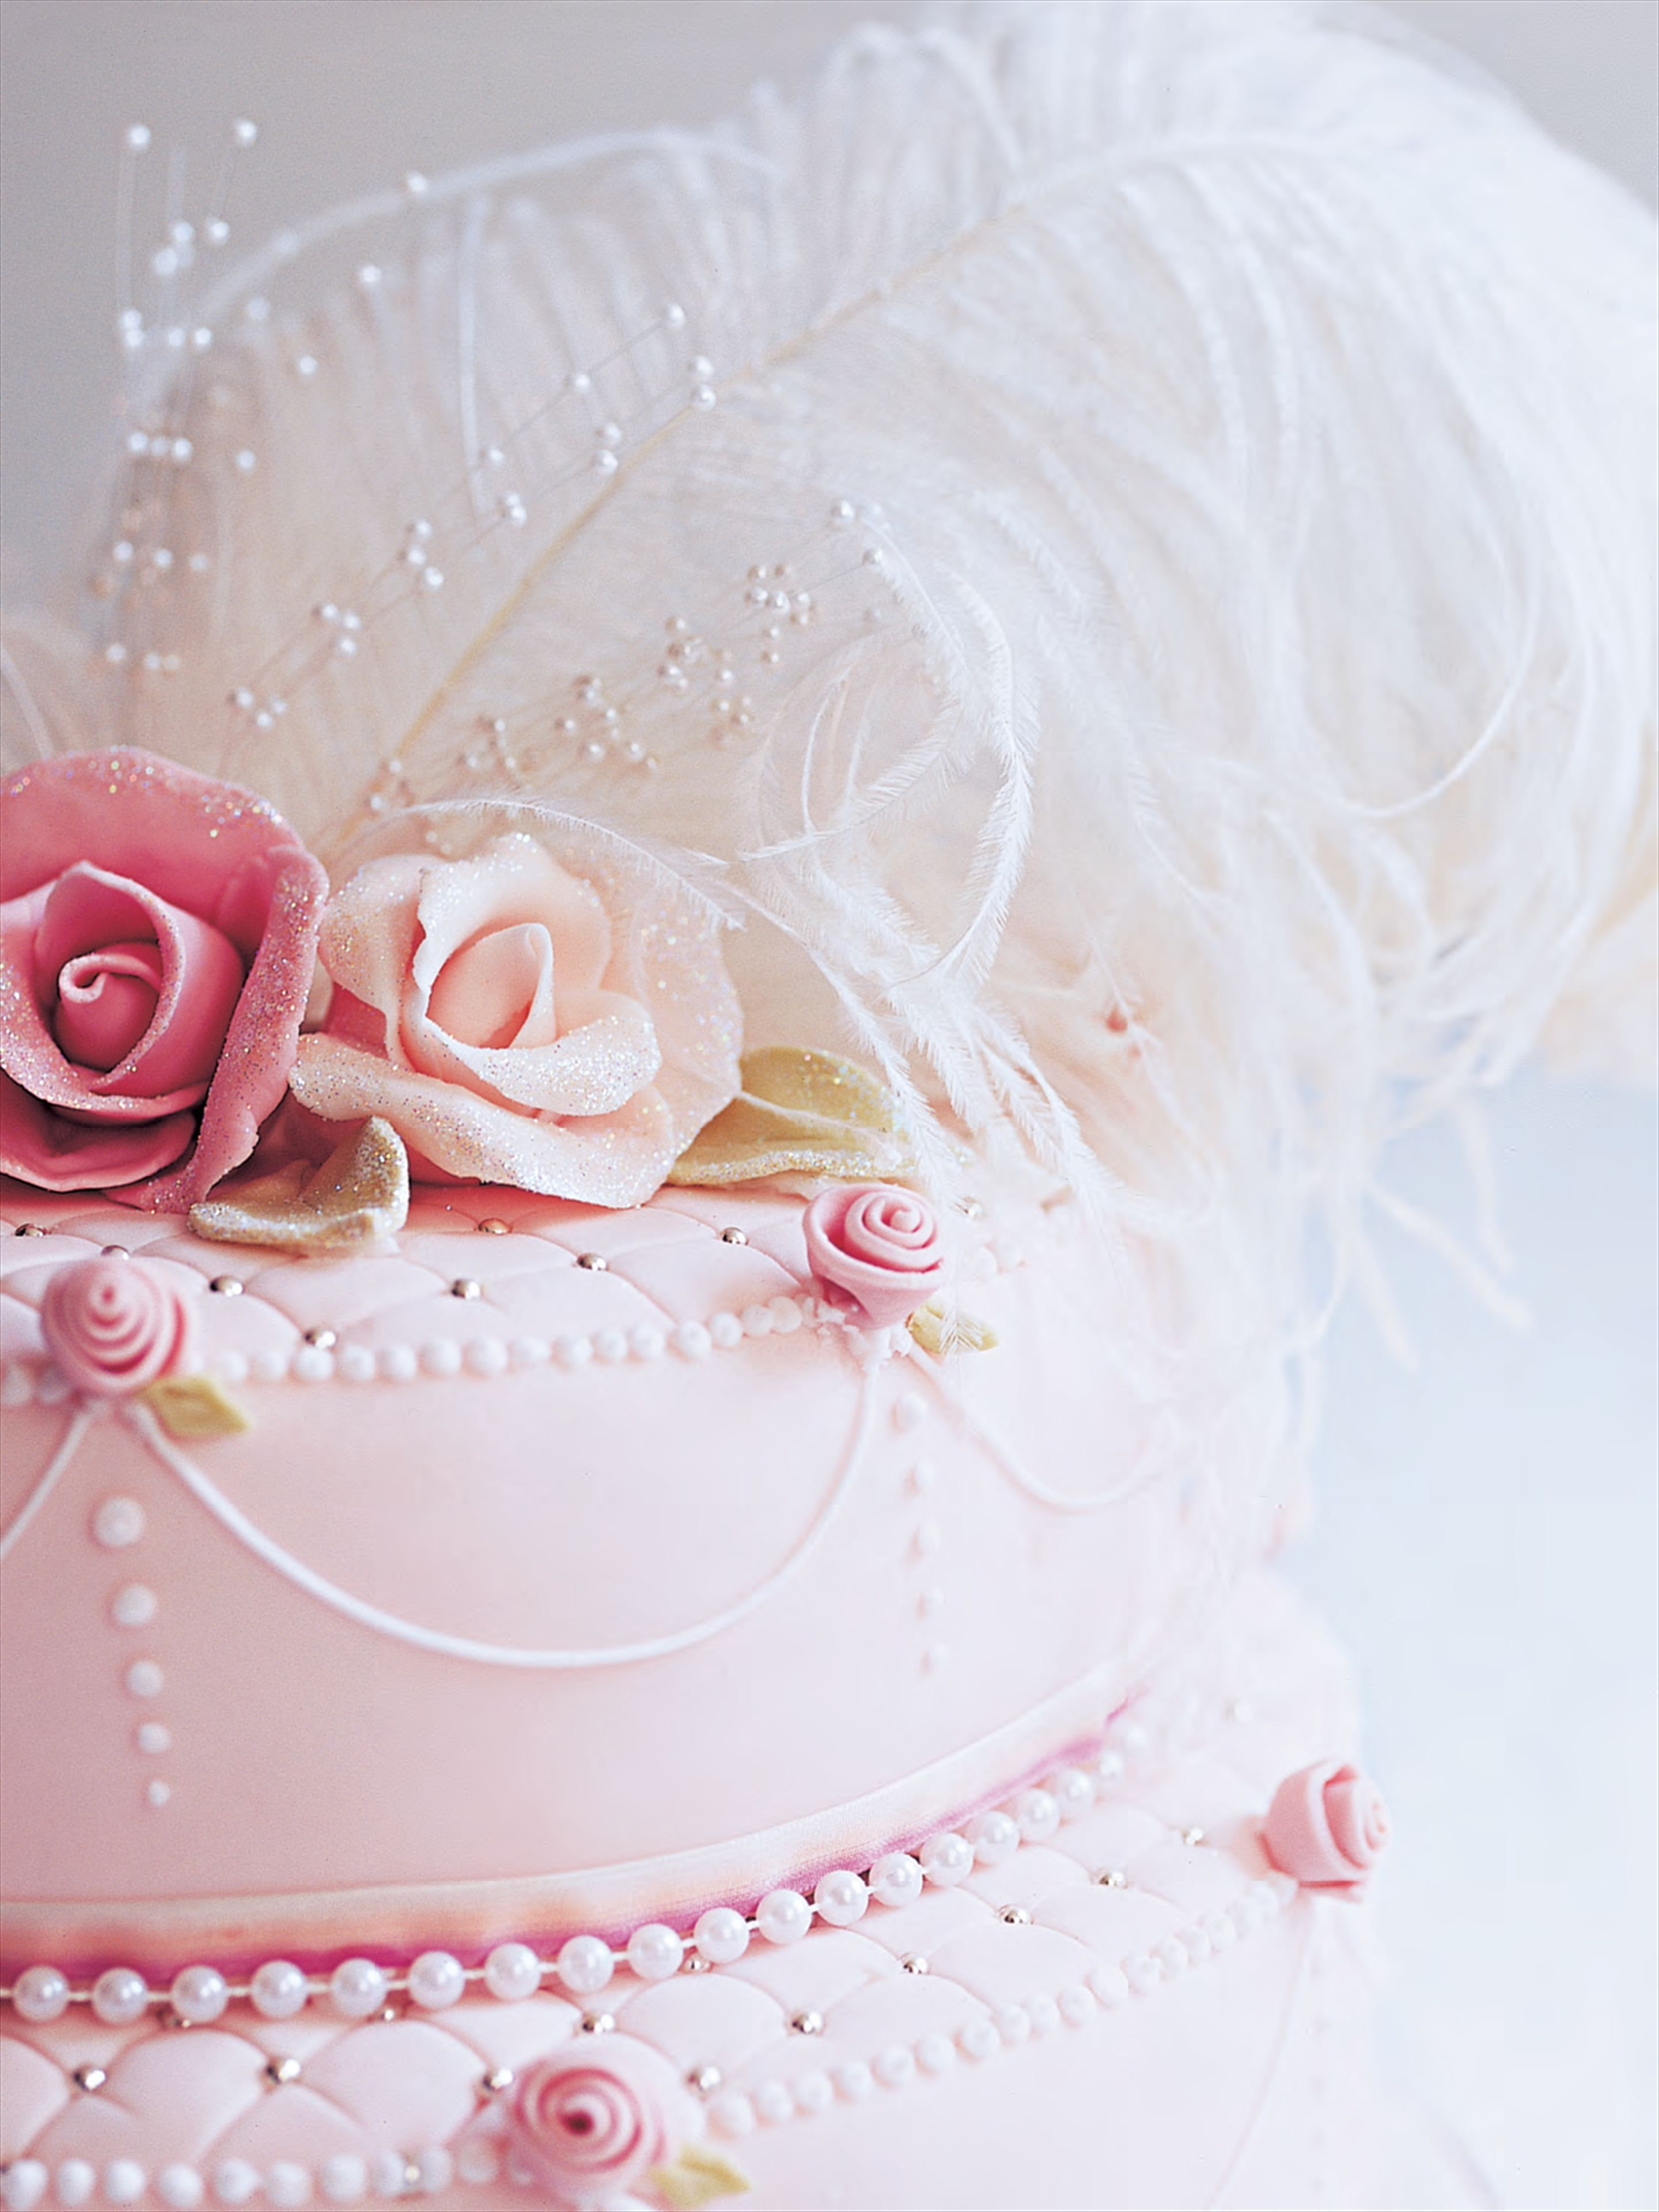 Tiered Marie Antoinette's cake